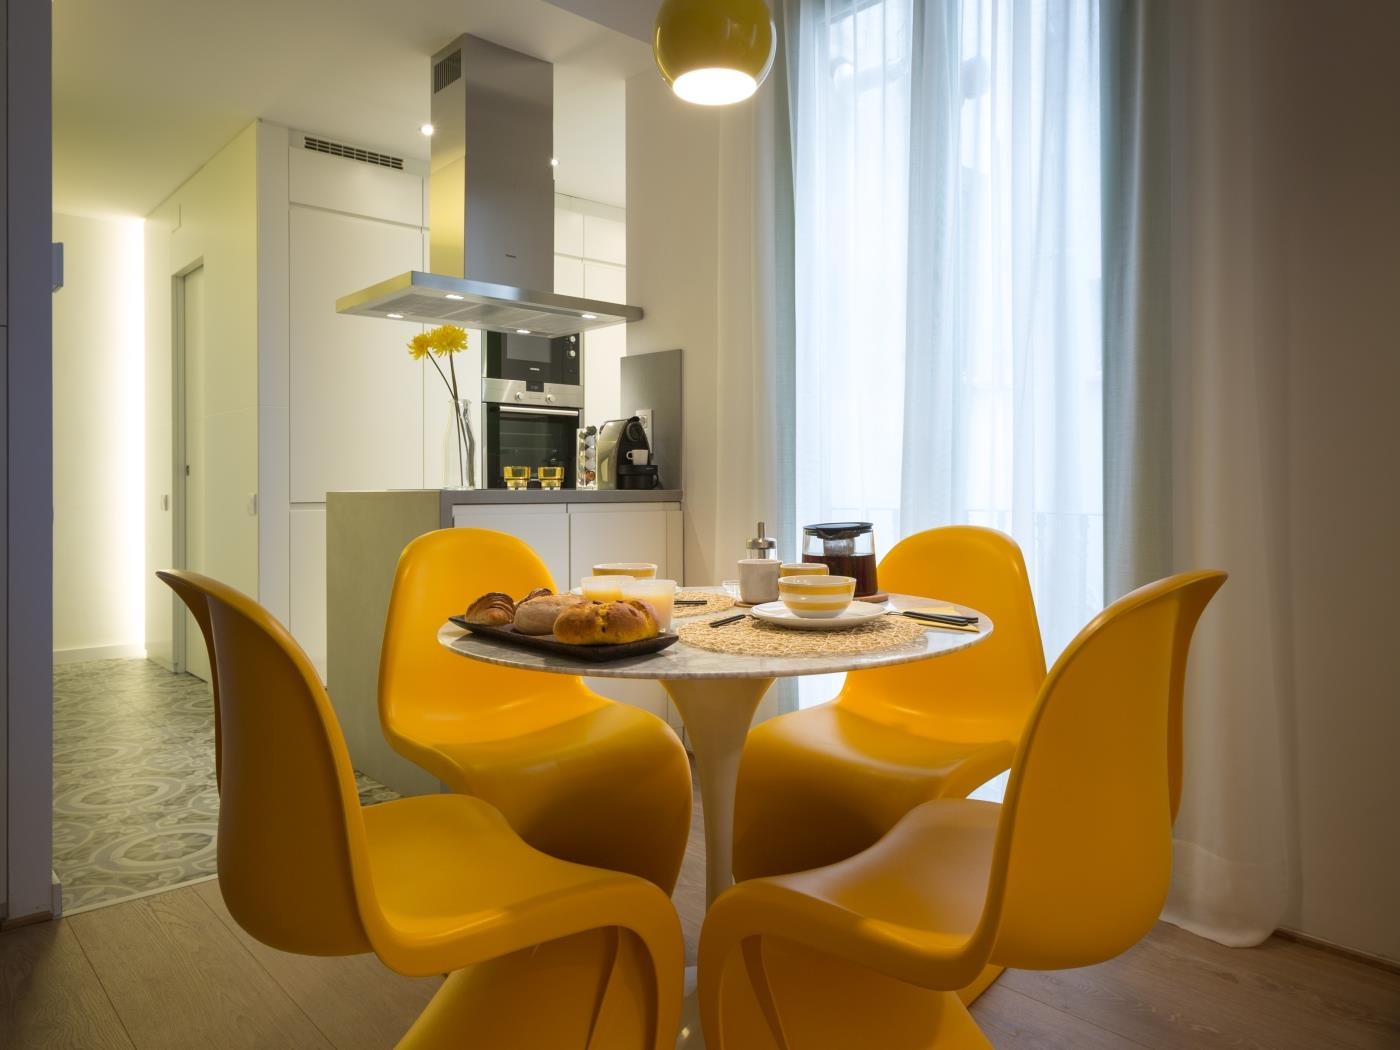 Beautiful apartment in the heart of Gràcia fully equipped and furnished - My Space Barcelona Apartments